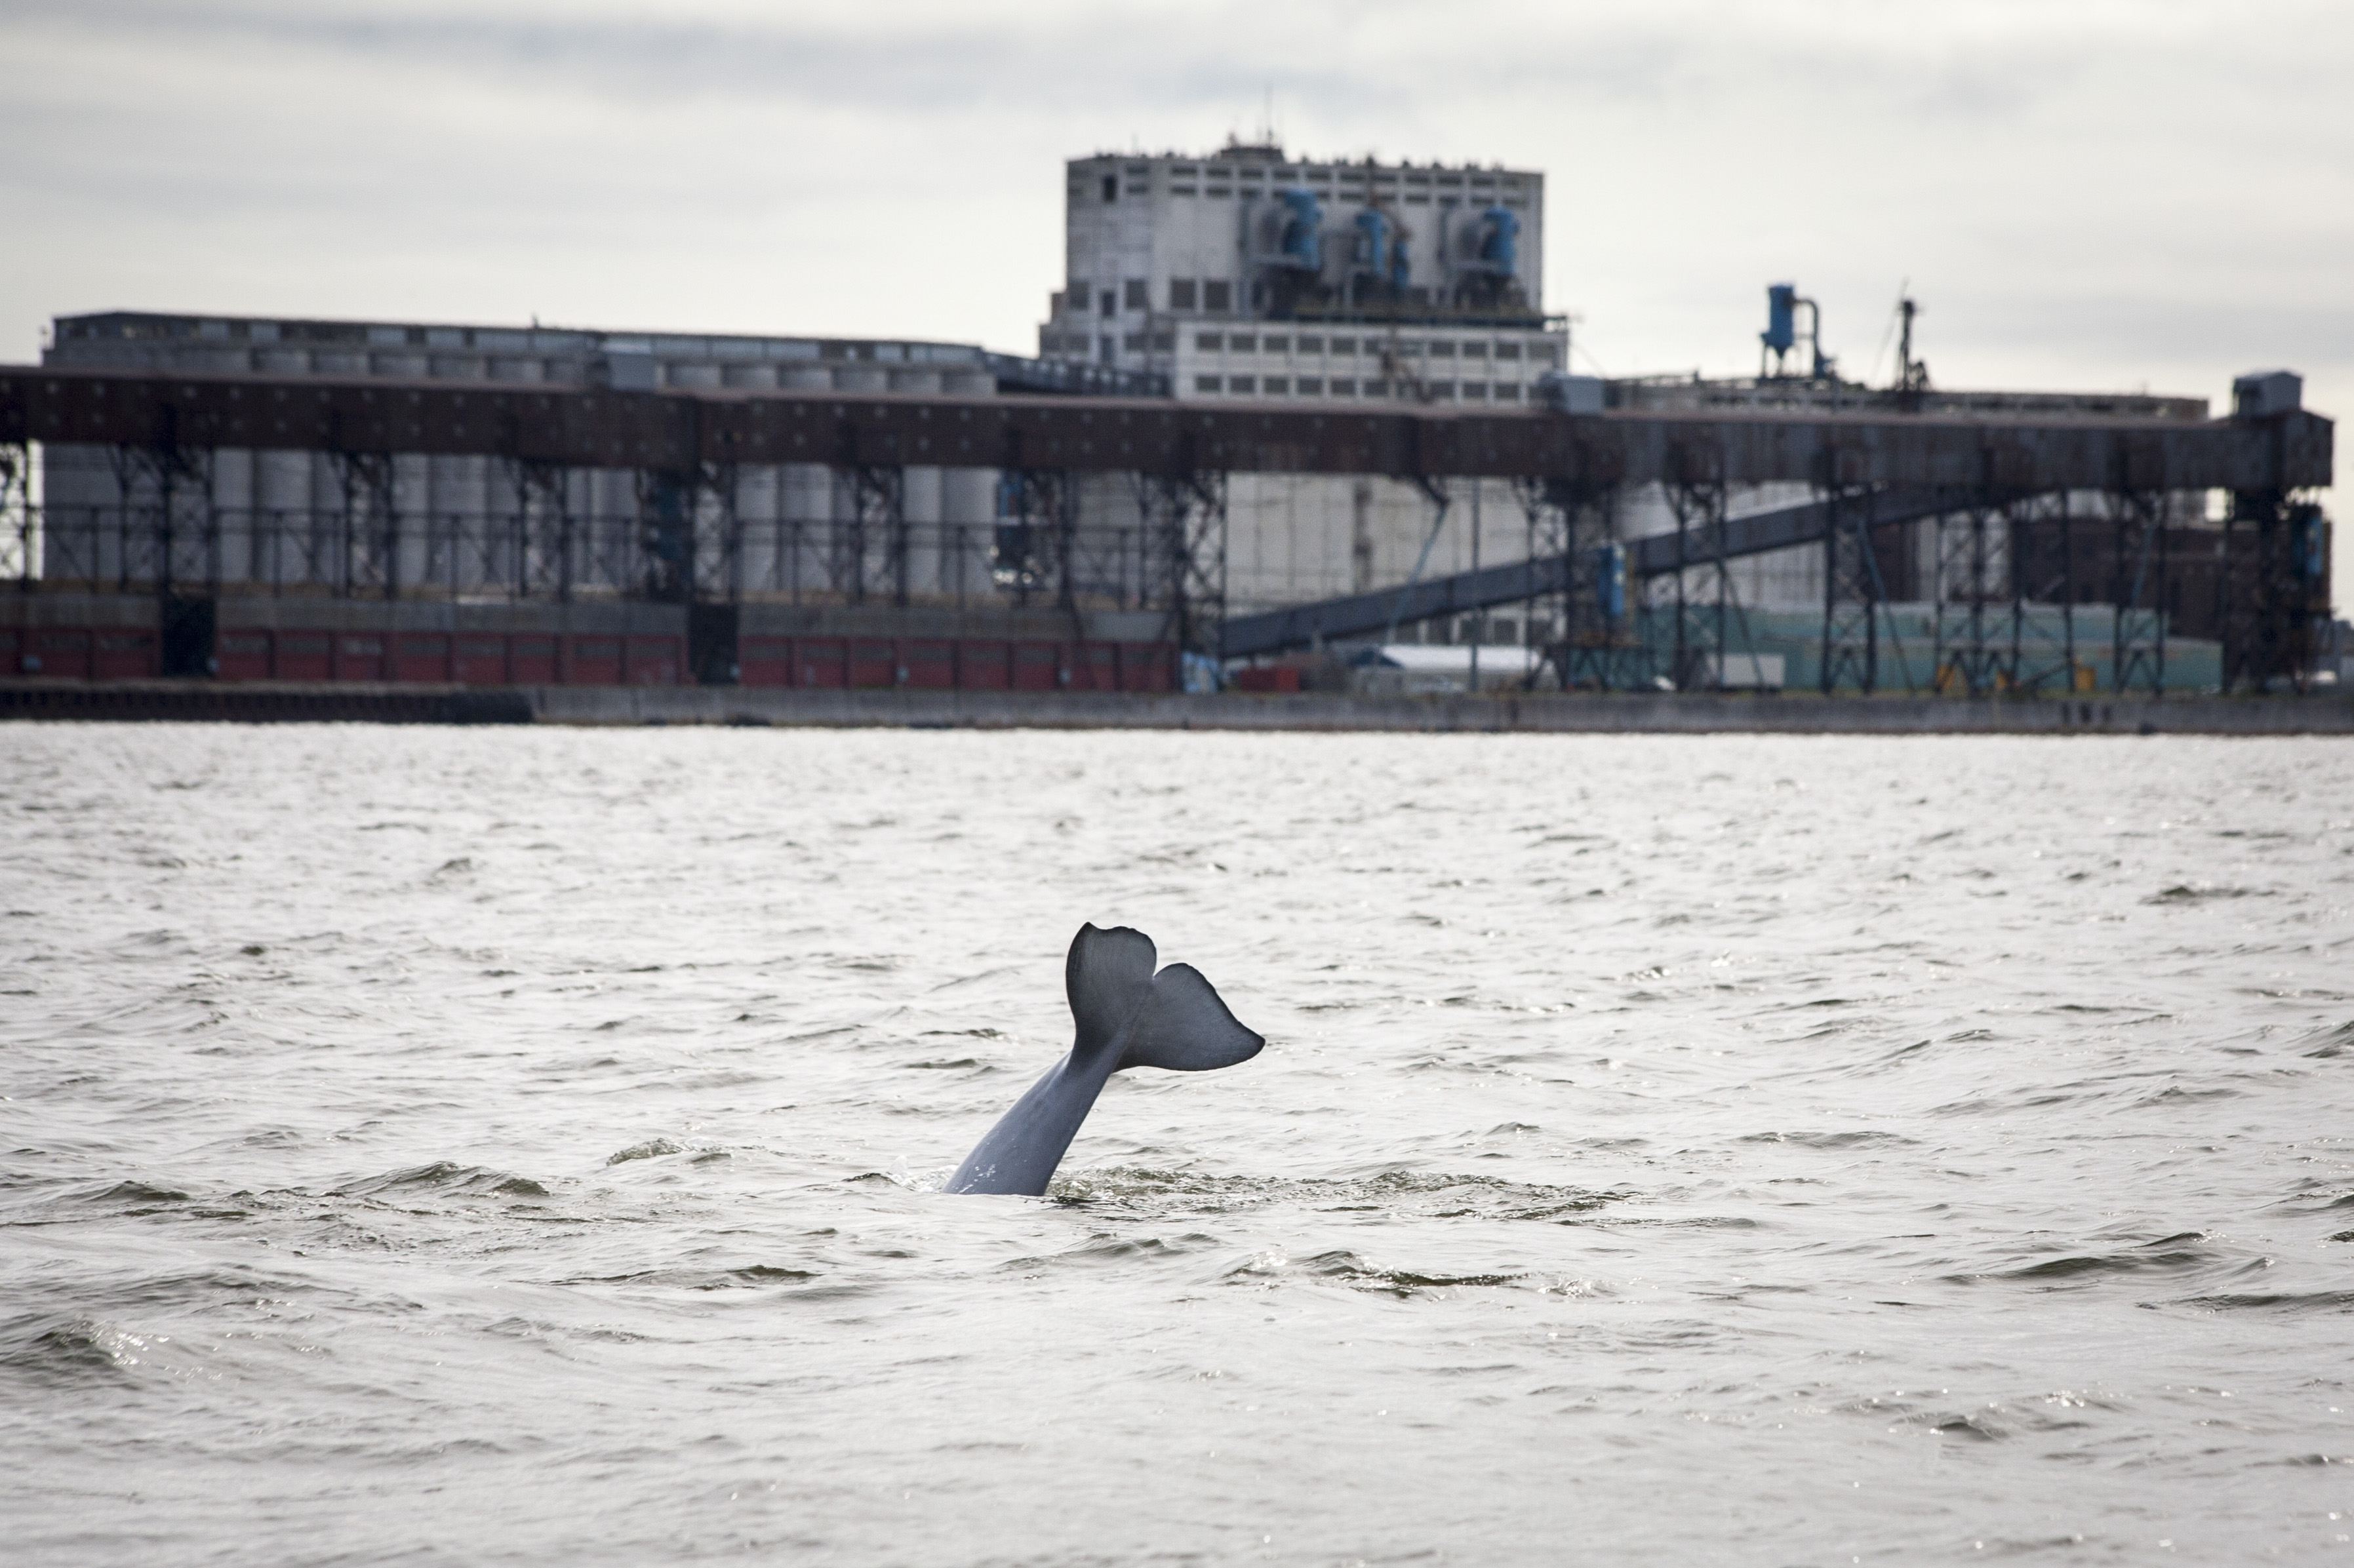 A beluga whale in the waters of Hudson Bay, near unused port facilities in Churchill, Manitoba, Canada, July 24, 2017. Beluga whales were a big draw that once brought tourists to this subarctic town, but the closure of Churchill's vital rail link to the rest of Canada has made the cost of visiting prohibitive for most. (Ian Willms / The New York Times)